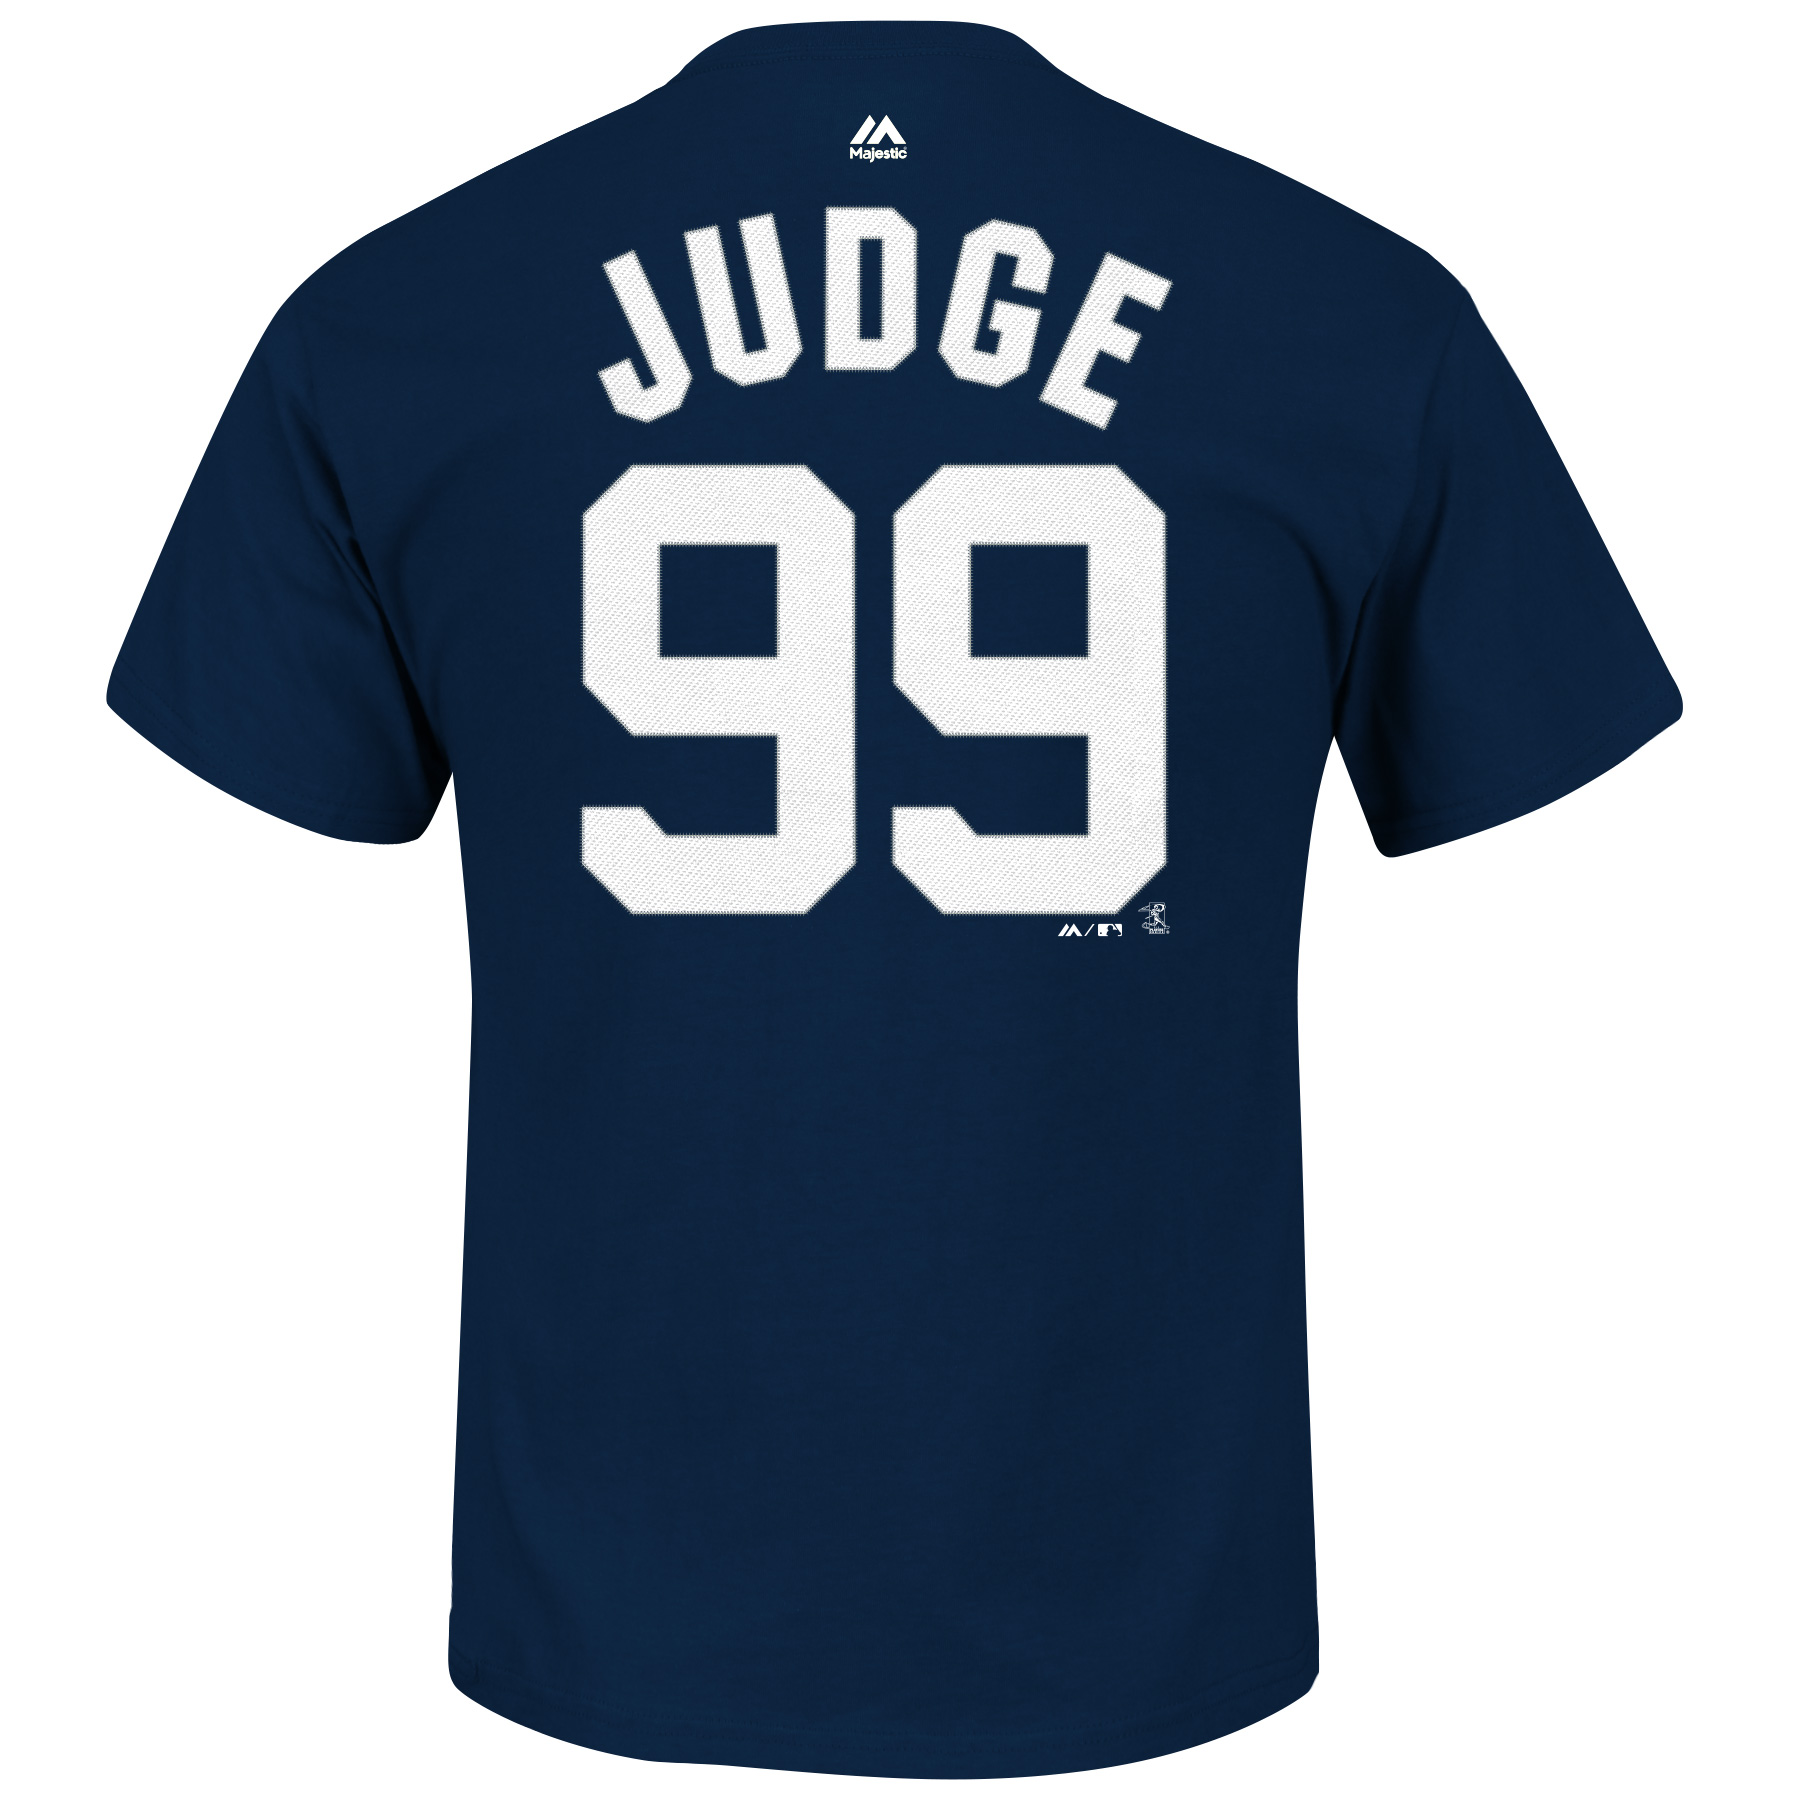 New York Yankees Aaron Judge Majestic MLB Player Men T Shirt Navy Blue S